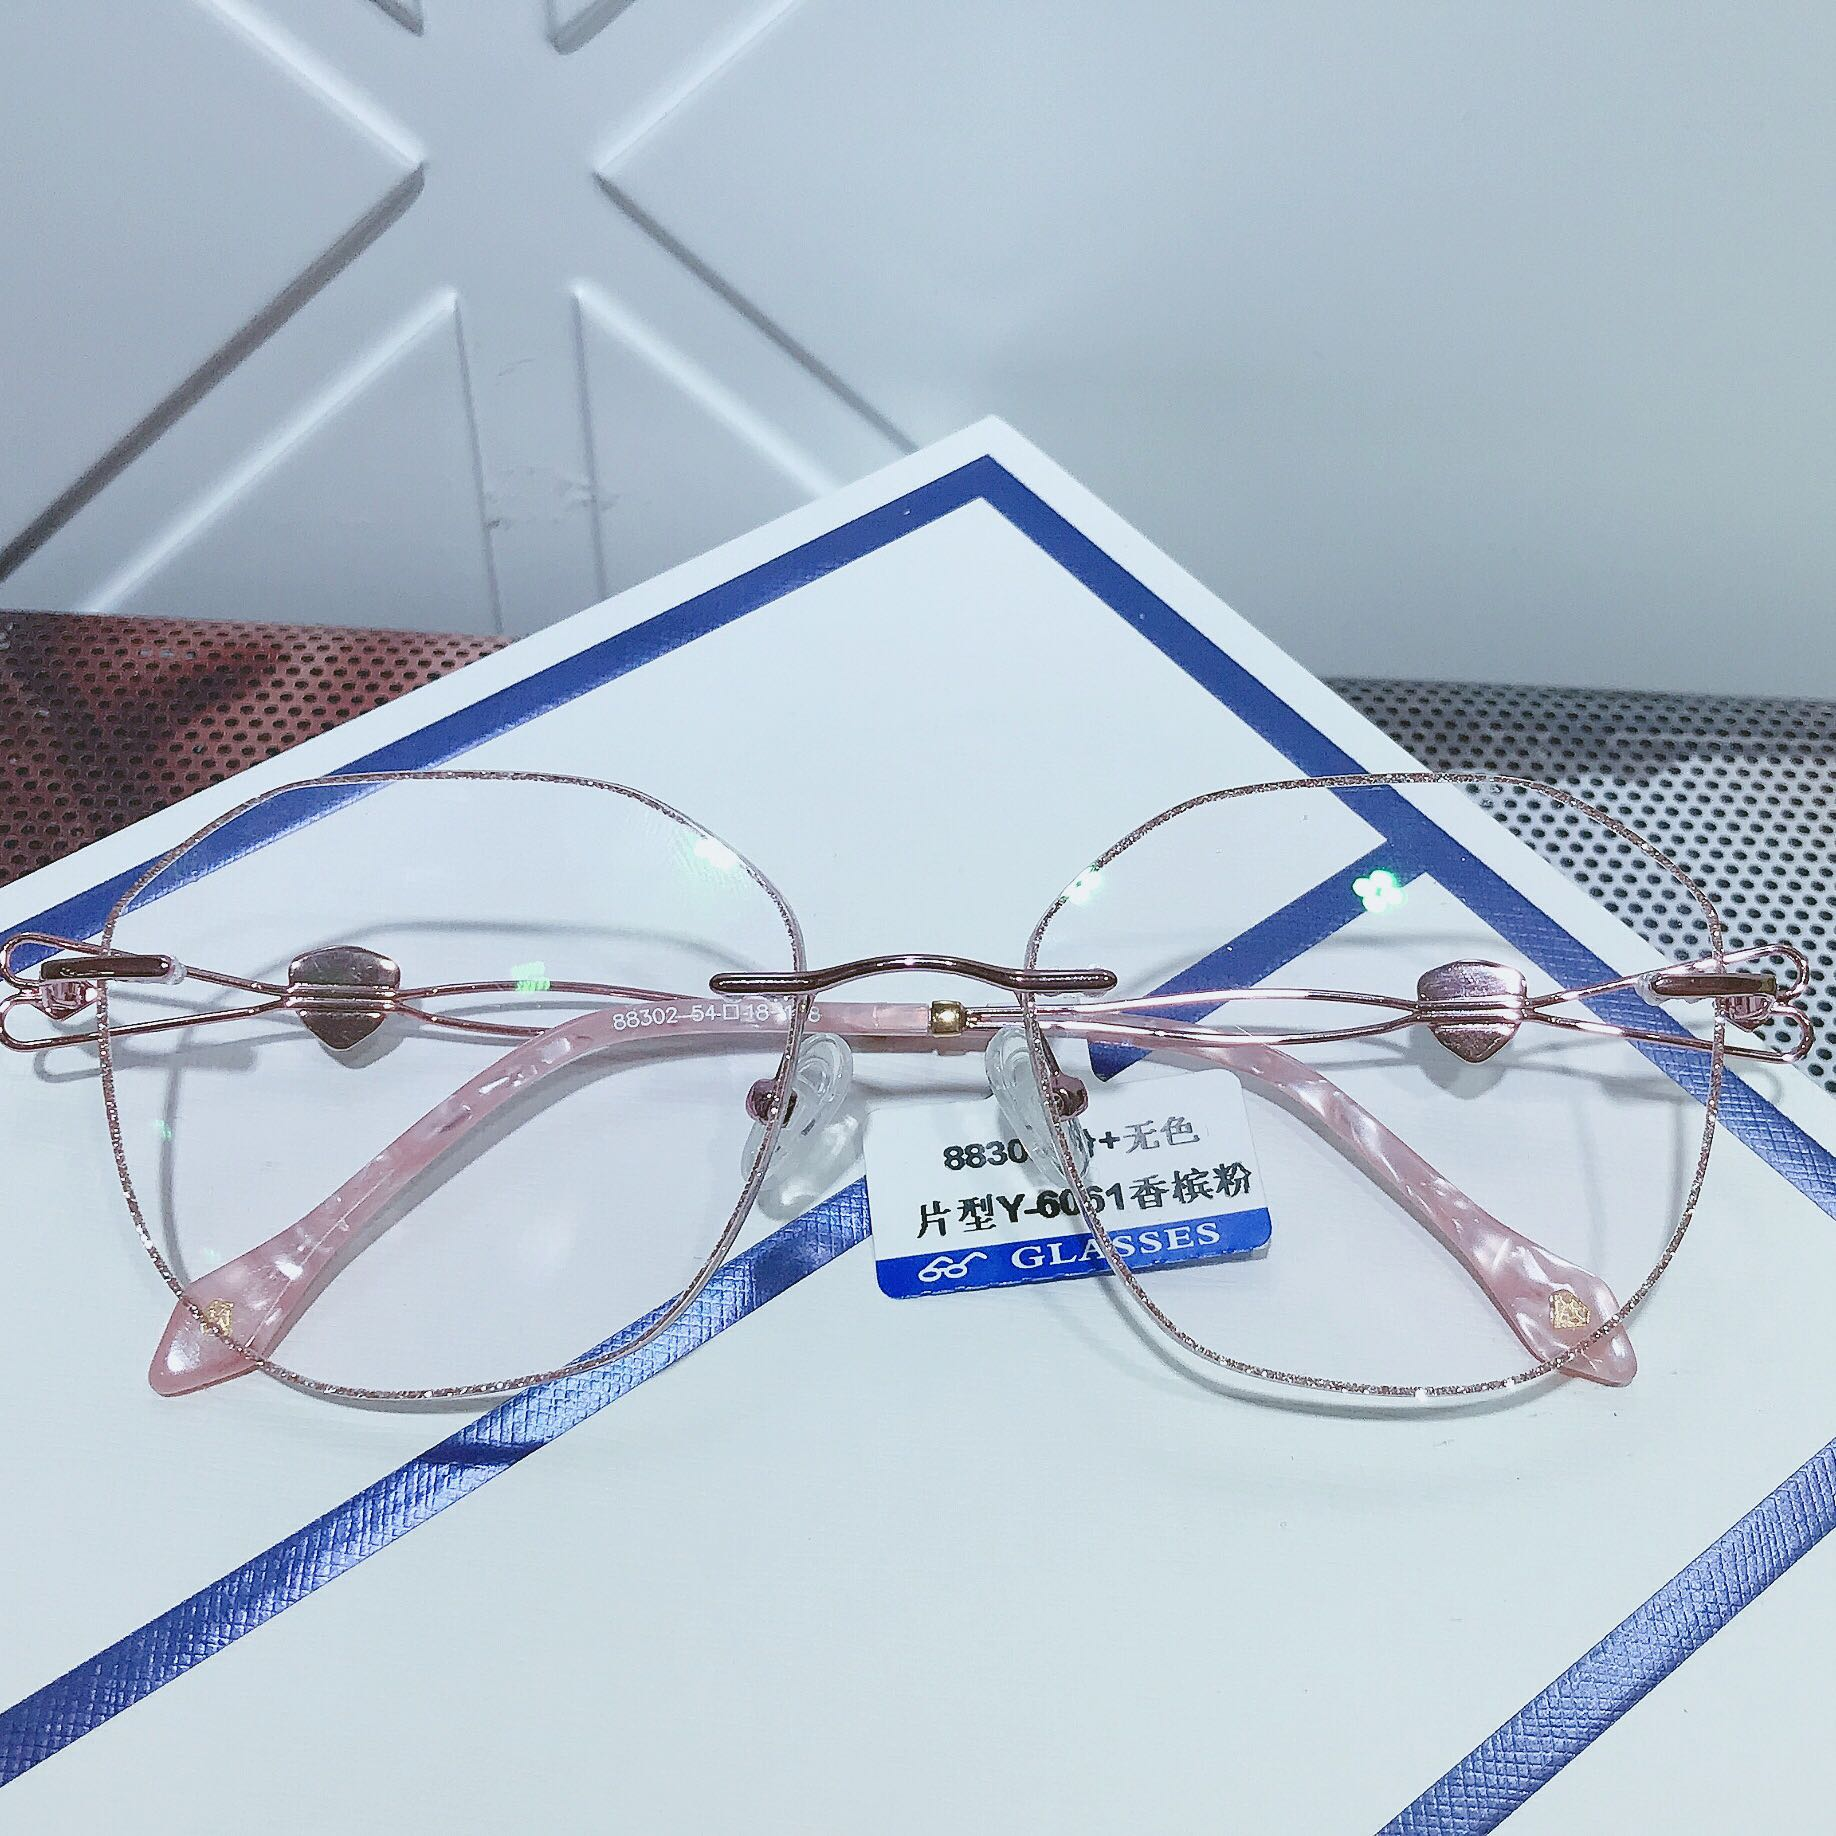 2020 new frameless spectacle frame beauty flat lens with pearlescent edge womens ultra light myopic lens mens trendy big face looks thin